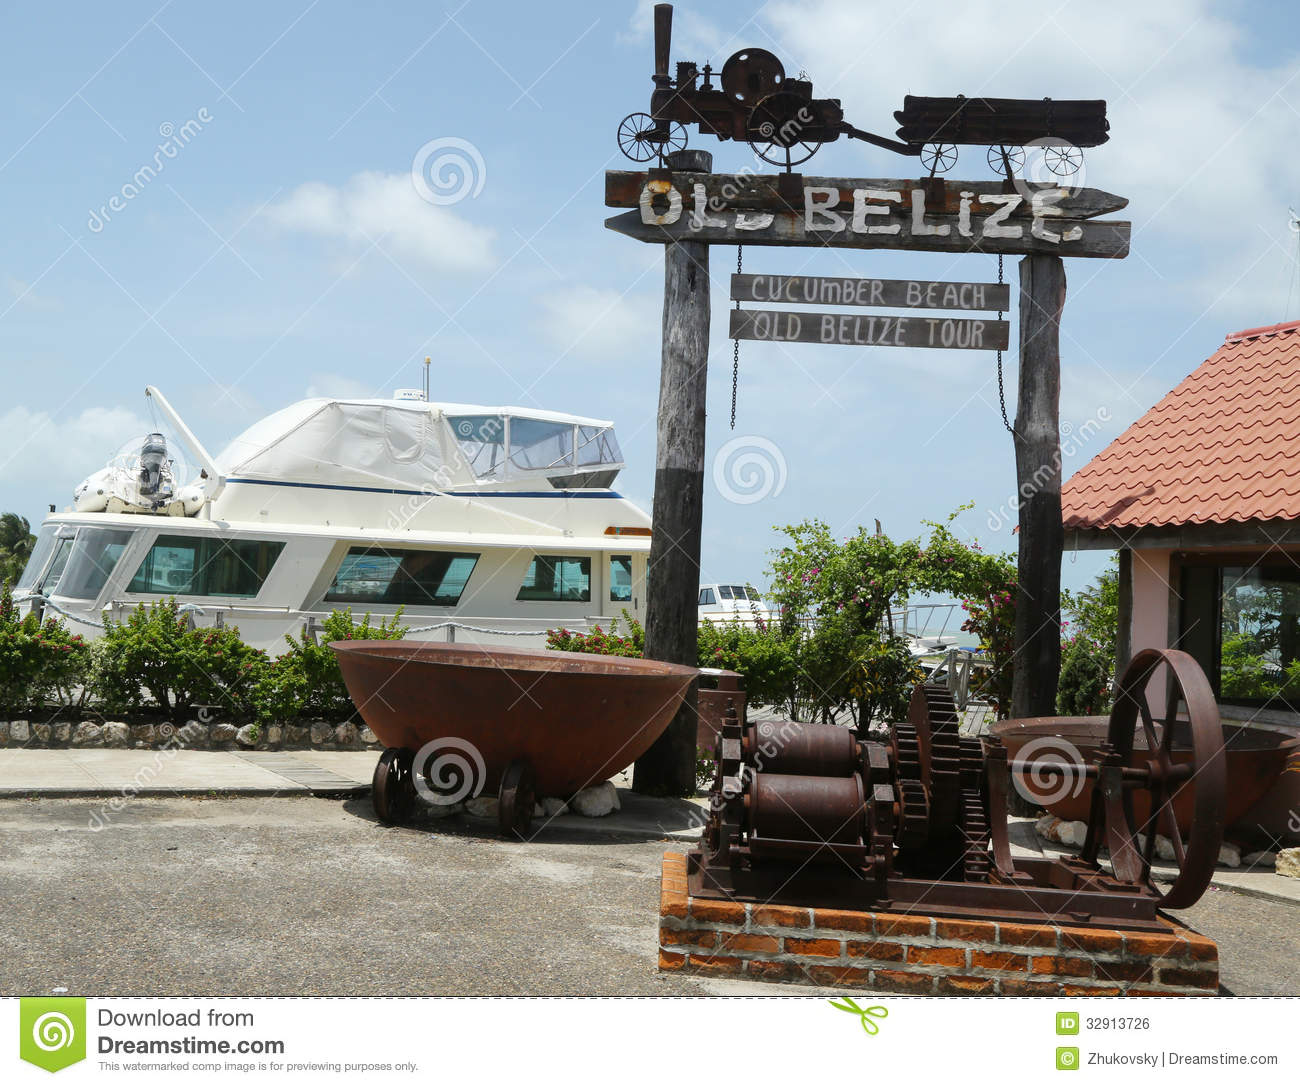 Old Belize Belize City, Old Belize Museum And Cucumber Beach Sign In Belize City Editorial ...